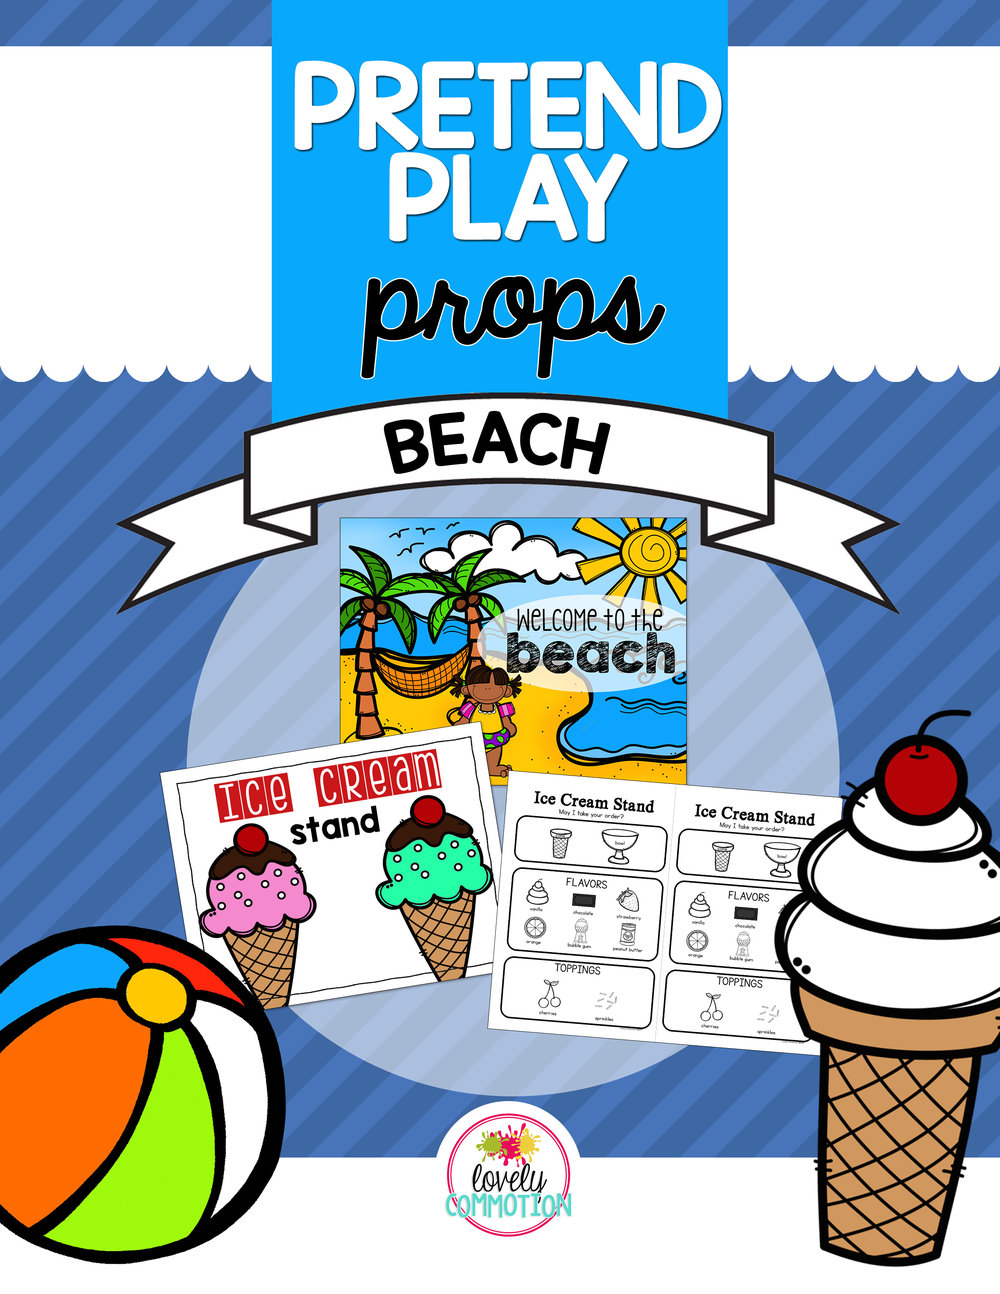 pretend play beach.jpg